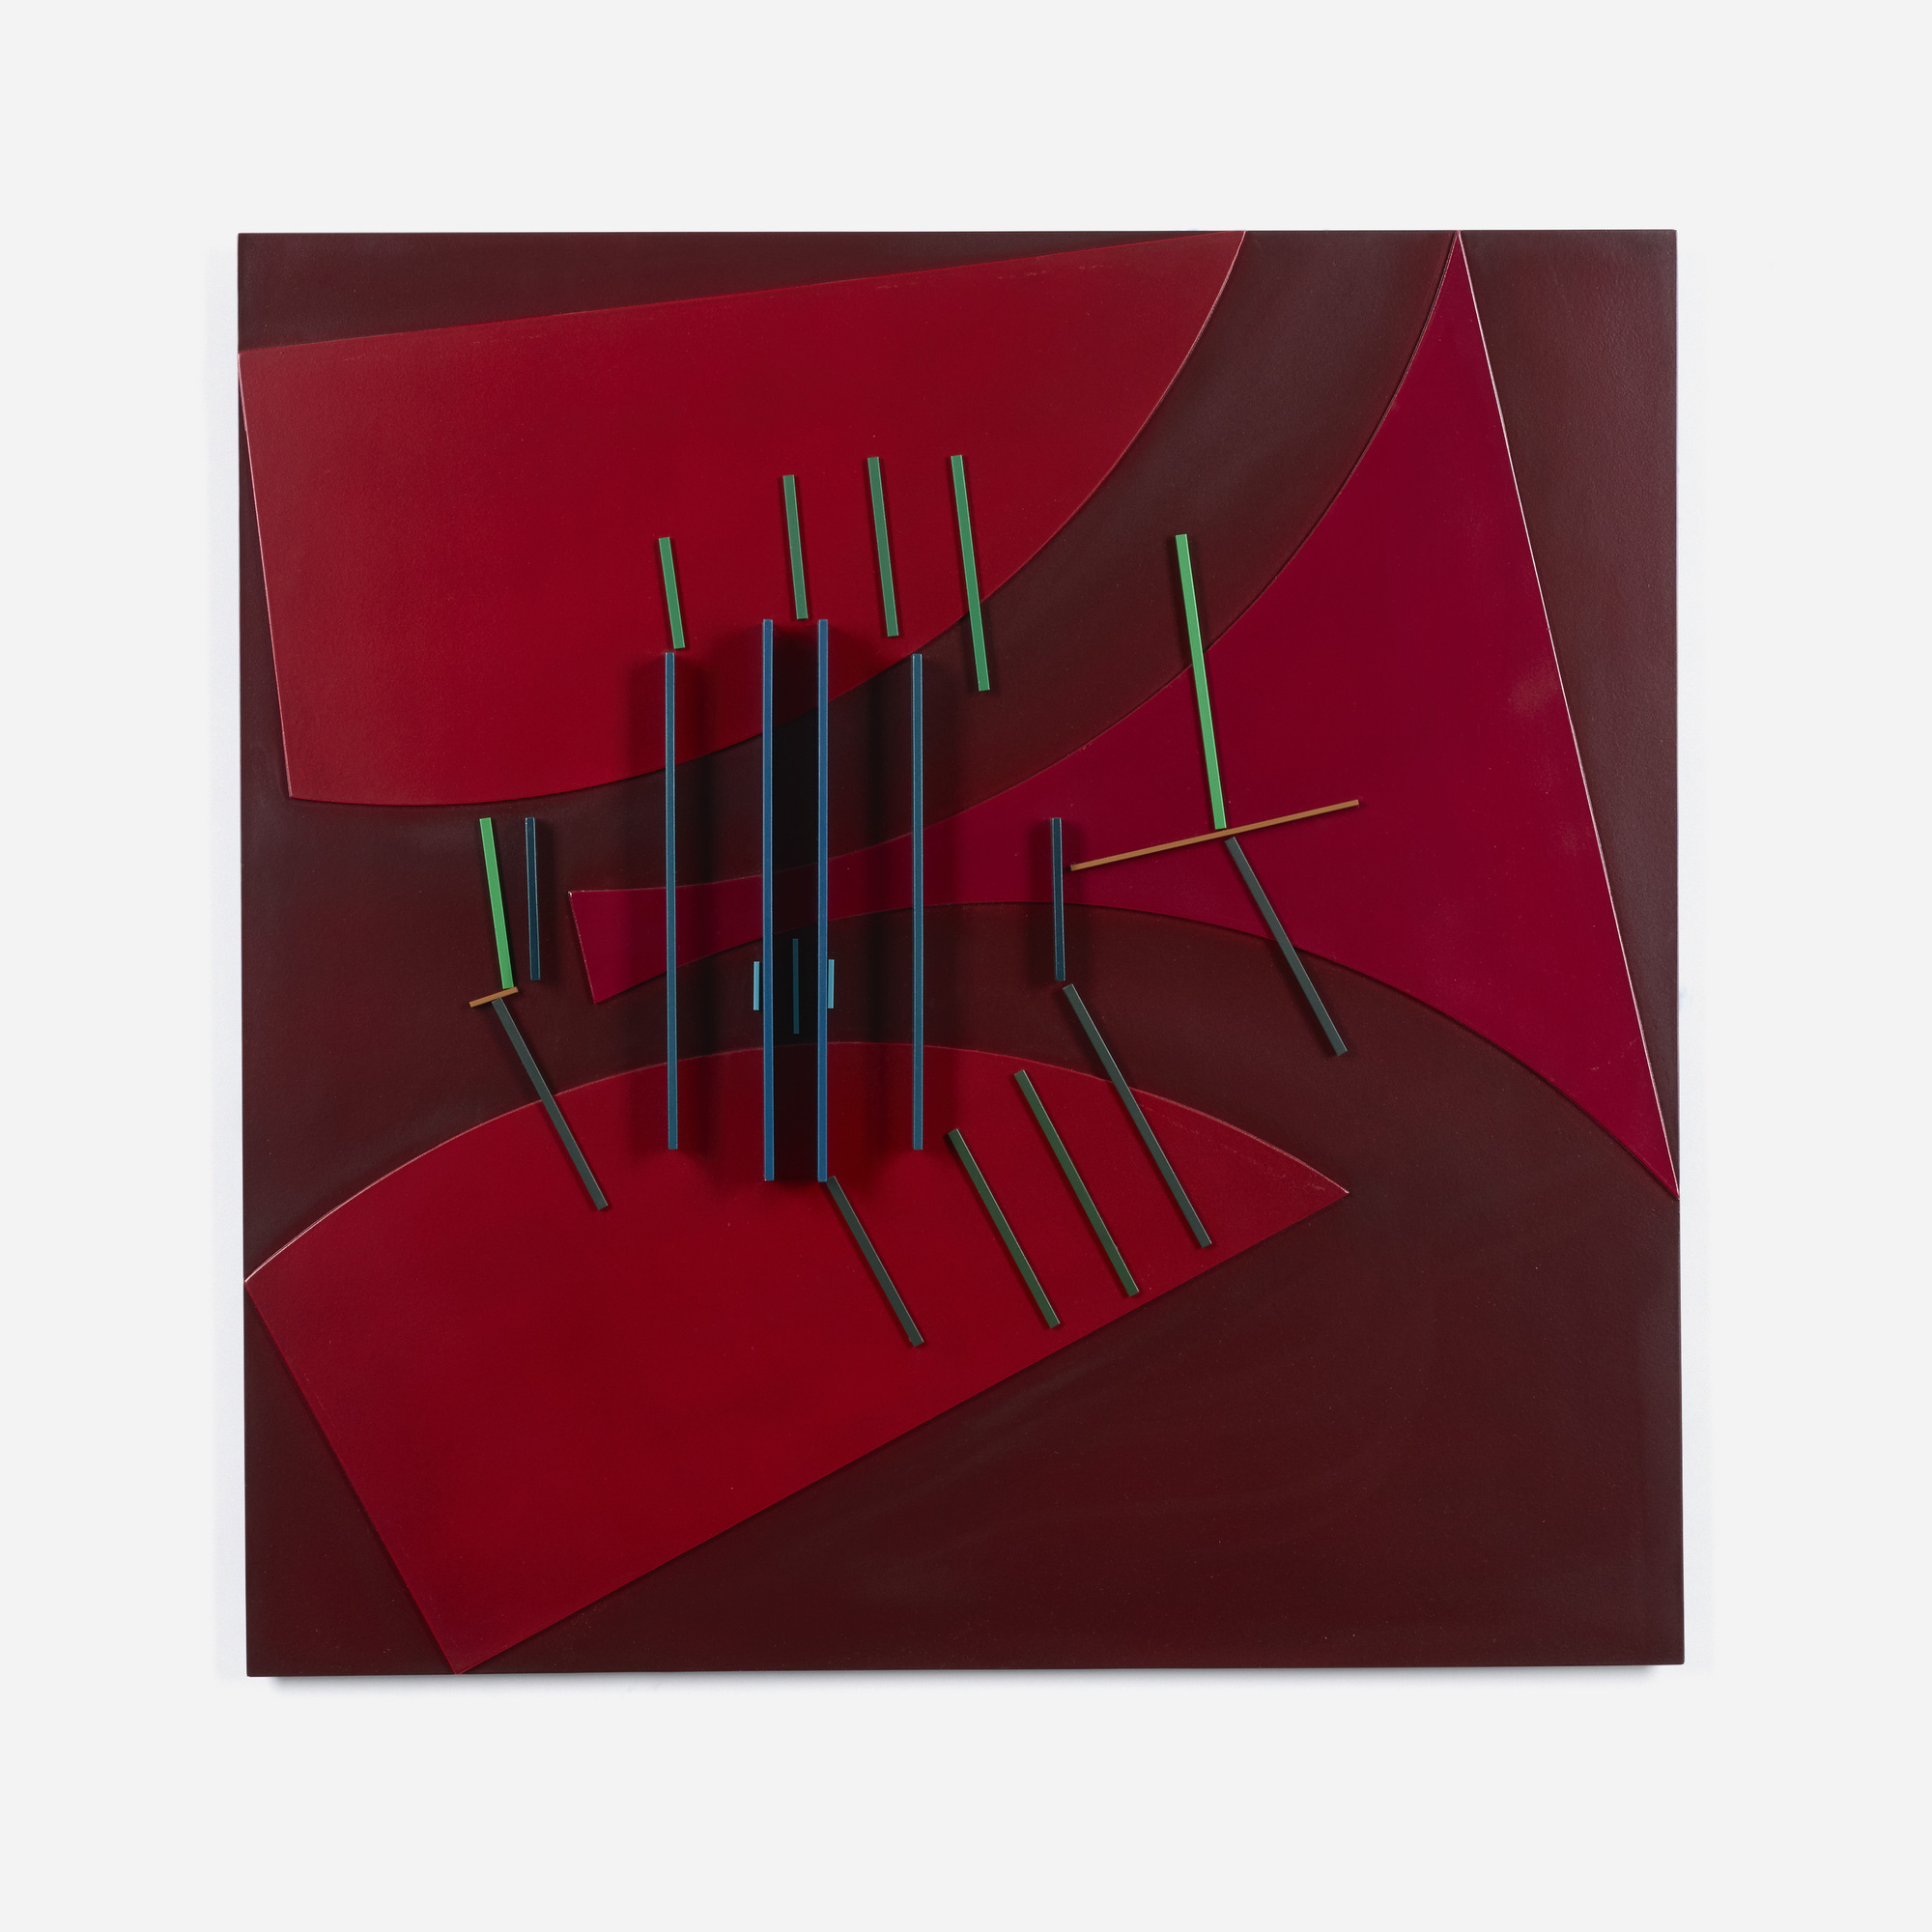 112: David Barr / Structurist Relief No. 344 (1 of 3)